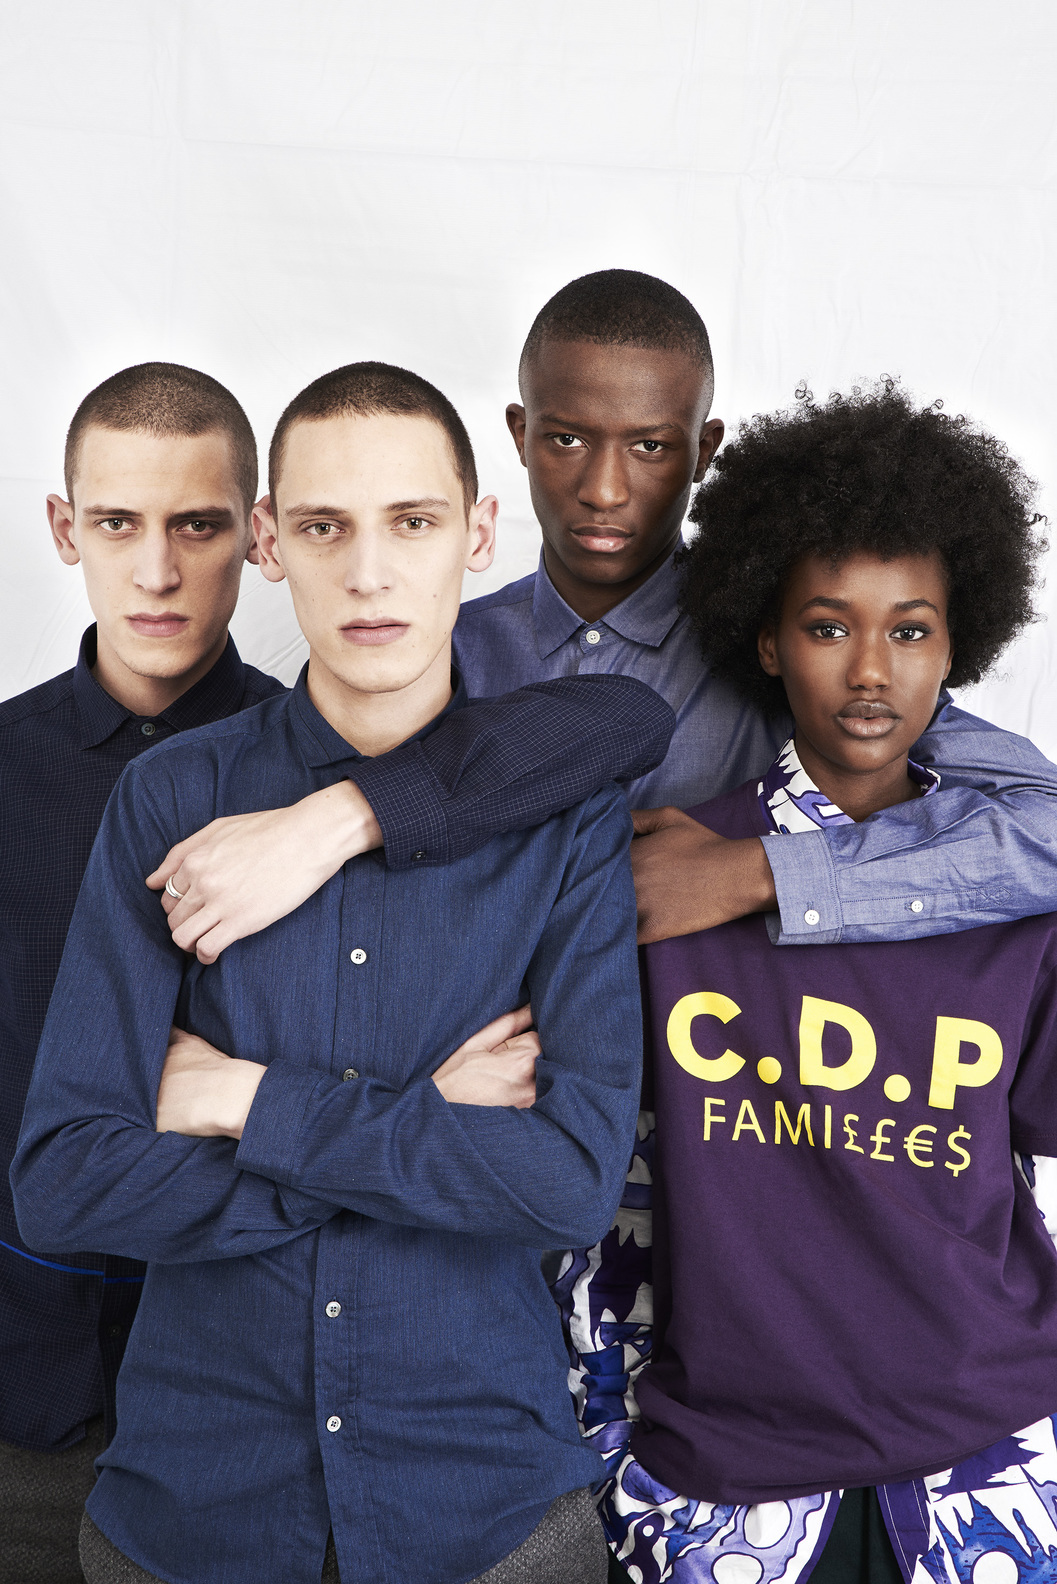 TEE CDP FAMILLES - Dark purple